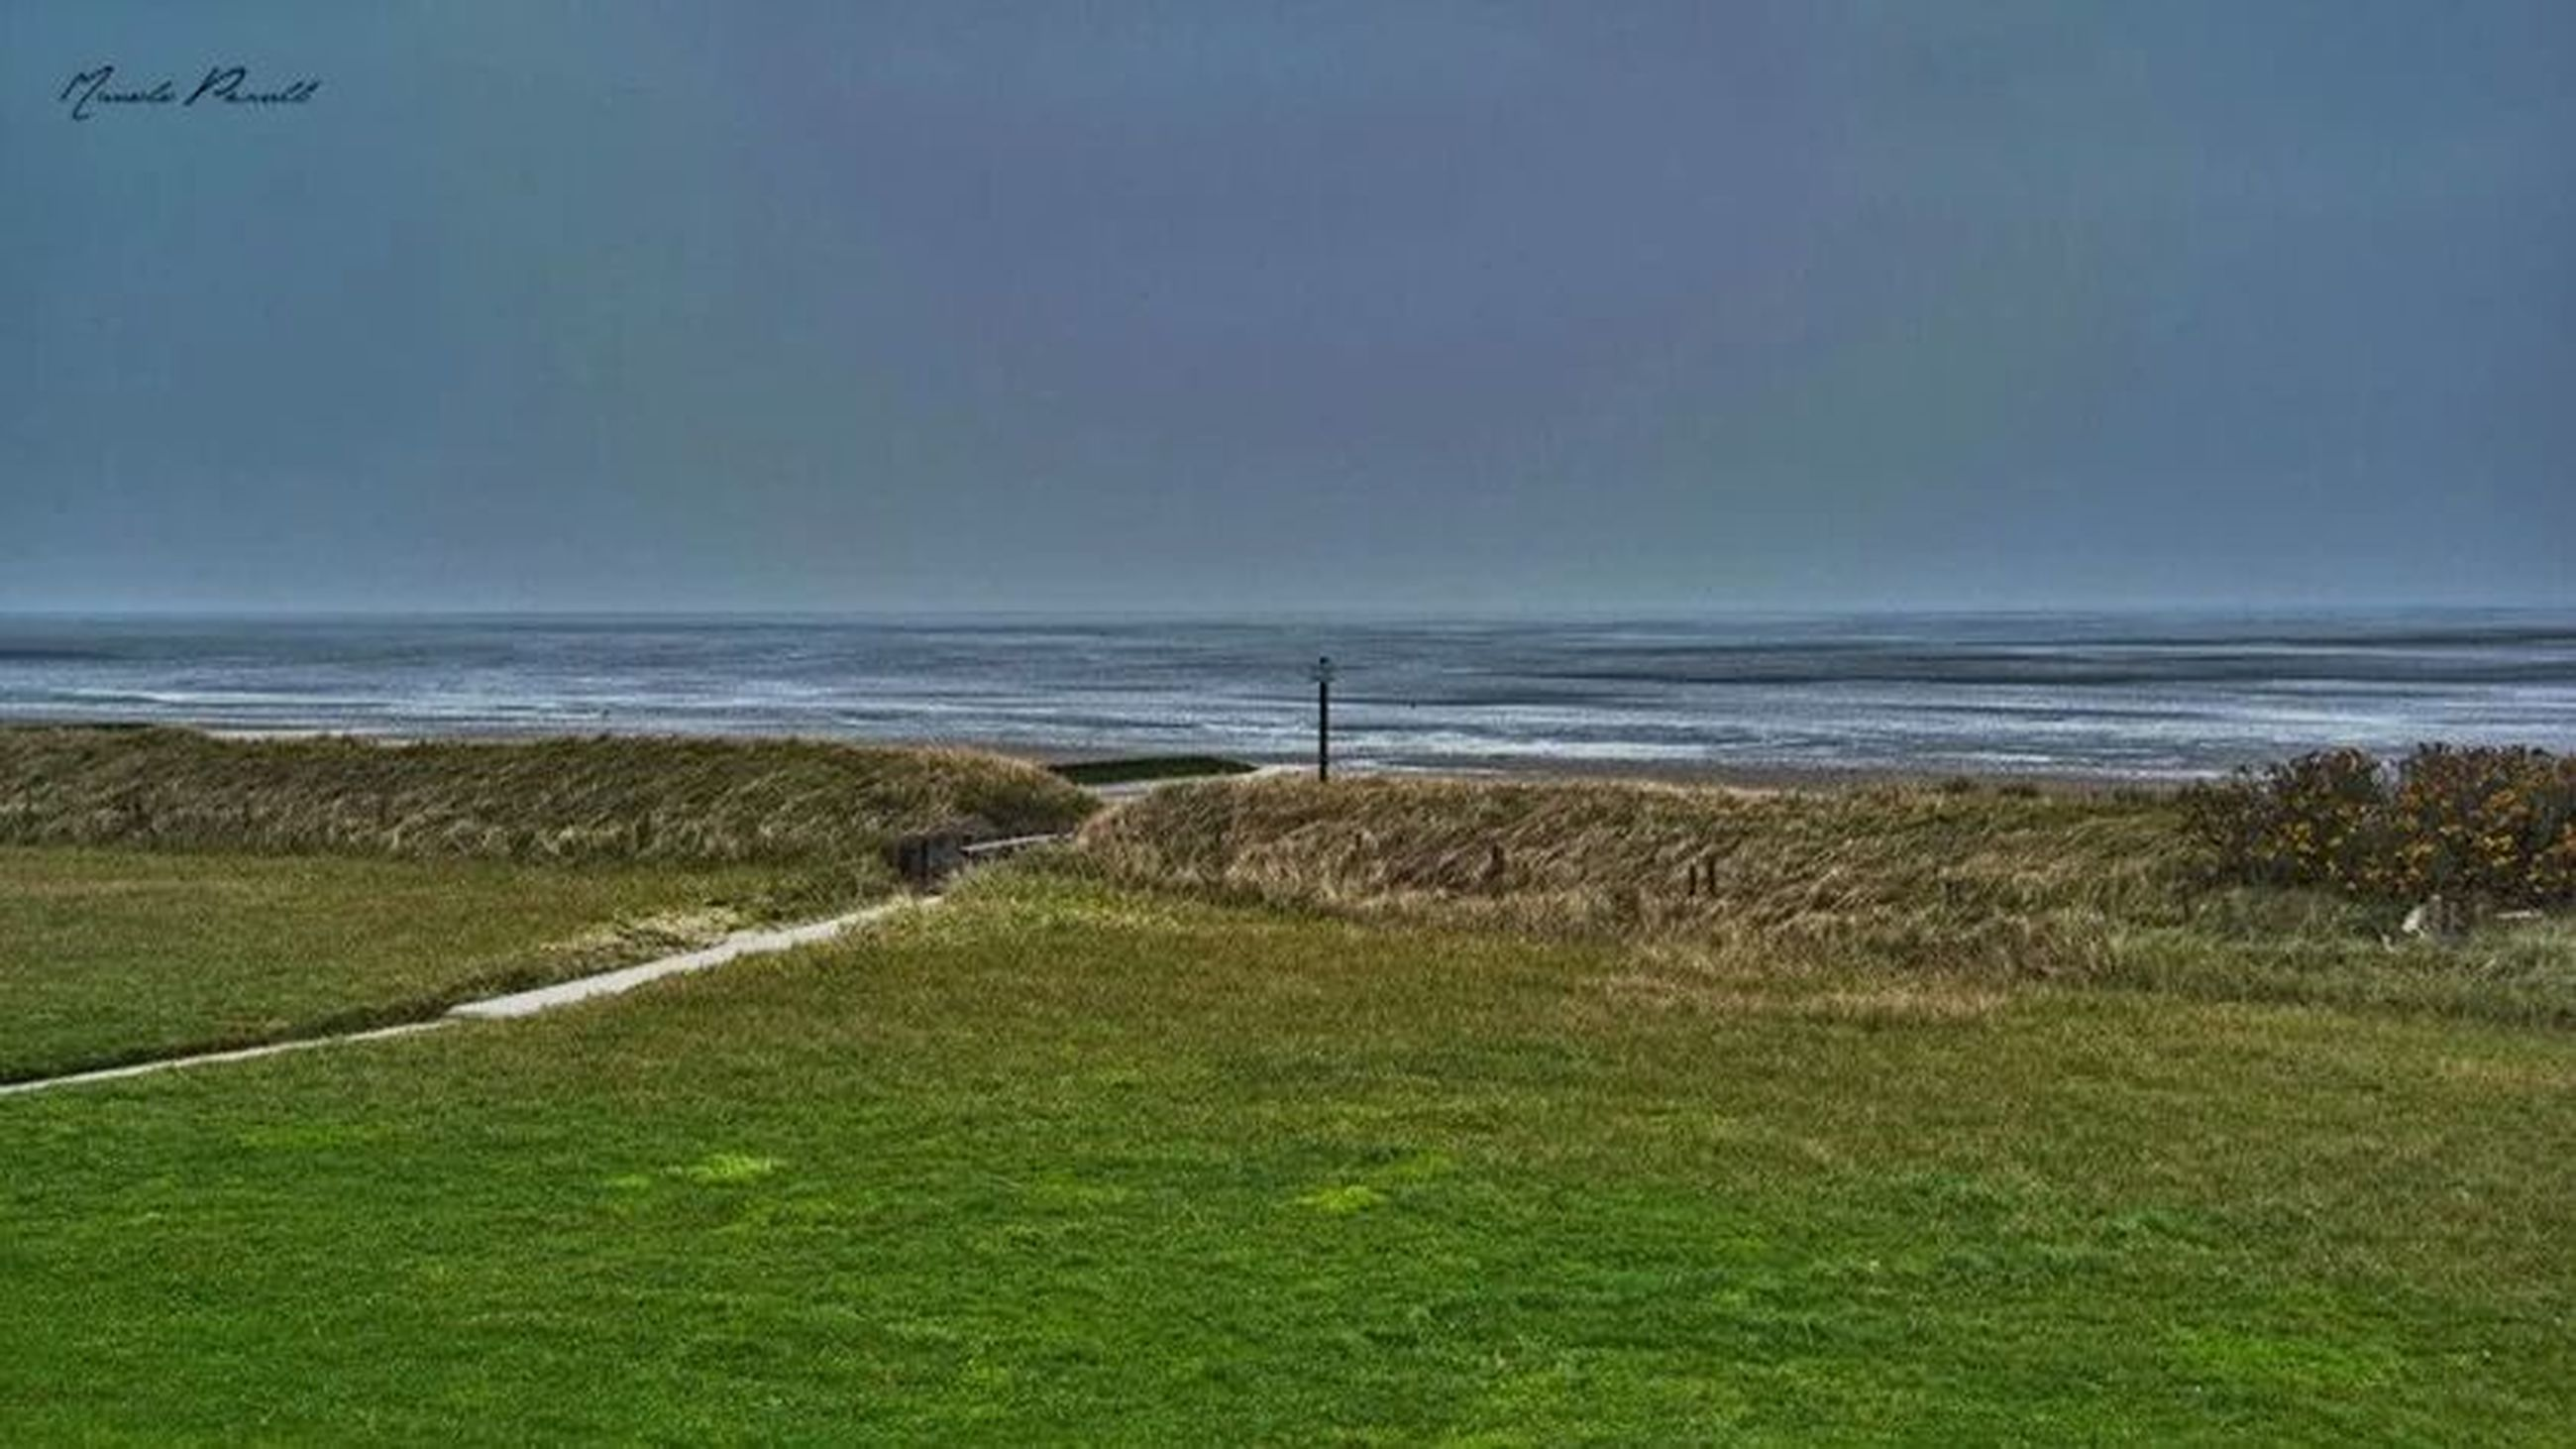 sea, horizon over water, water, tranquil scene, tranquility, grass, scenics, beauty in nature, nature, sky, copy space, clear sky, beach, shore, landscape, idyllic, field, blue, remote, day